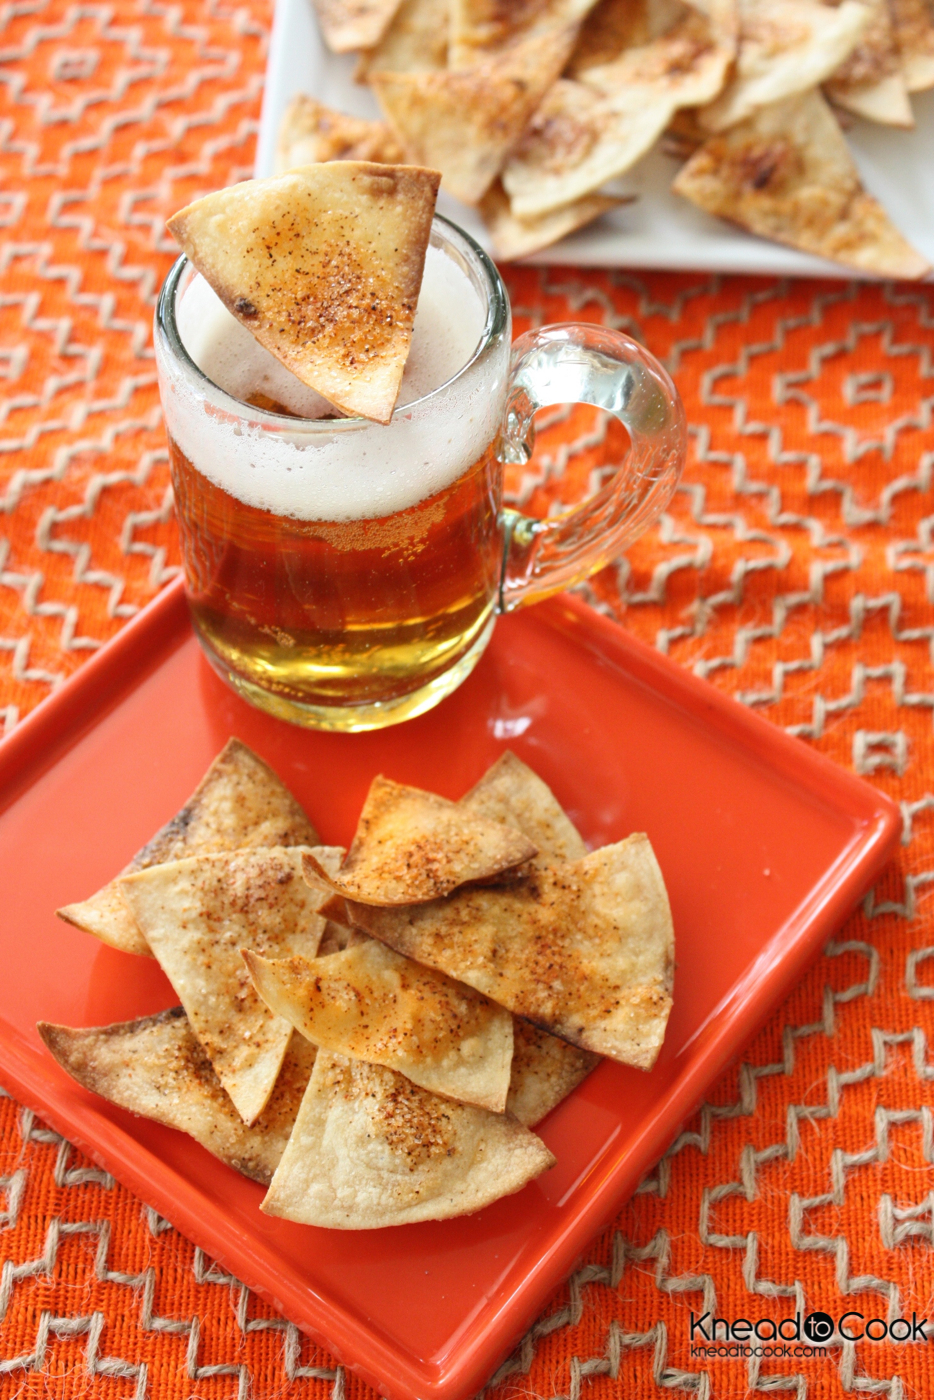 Homemade Tortilla Chips - You pick the flavor! - Knead to Cook